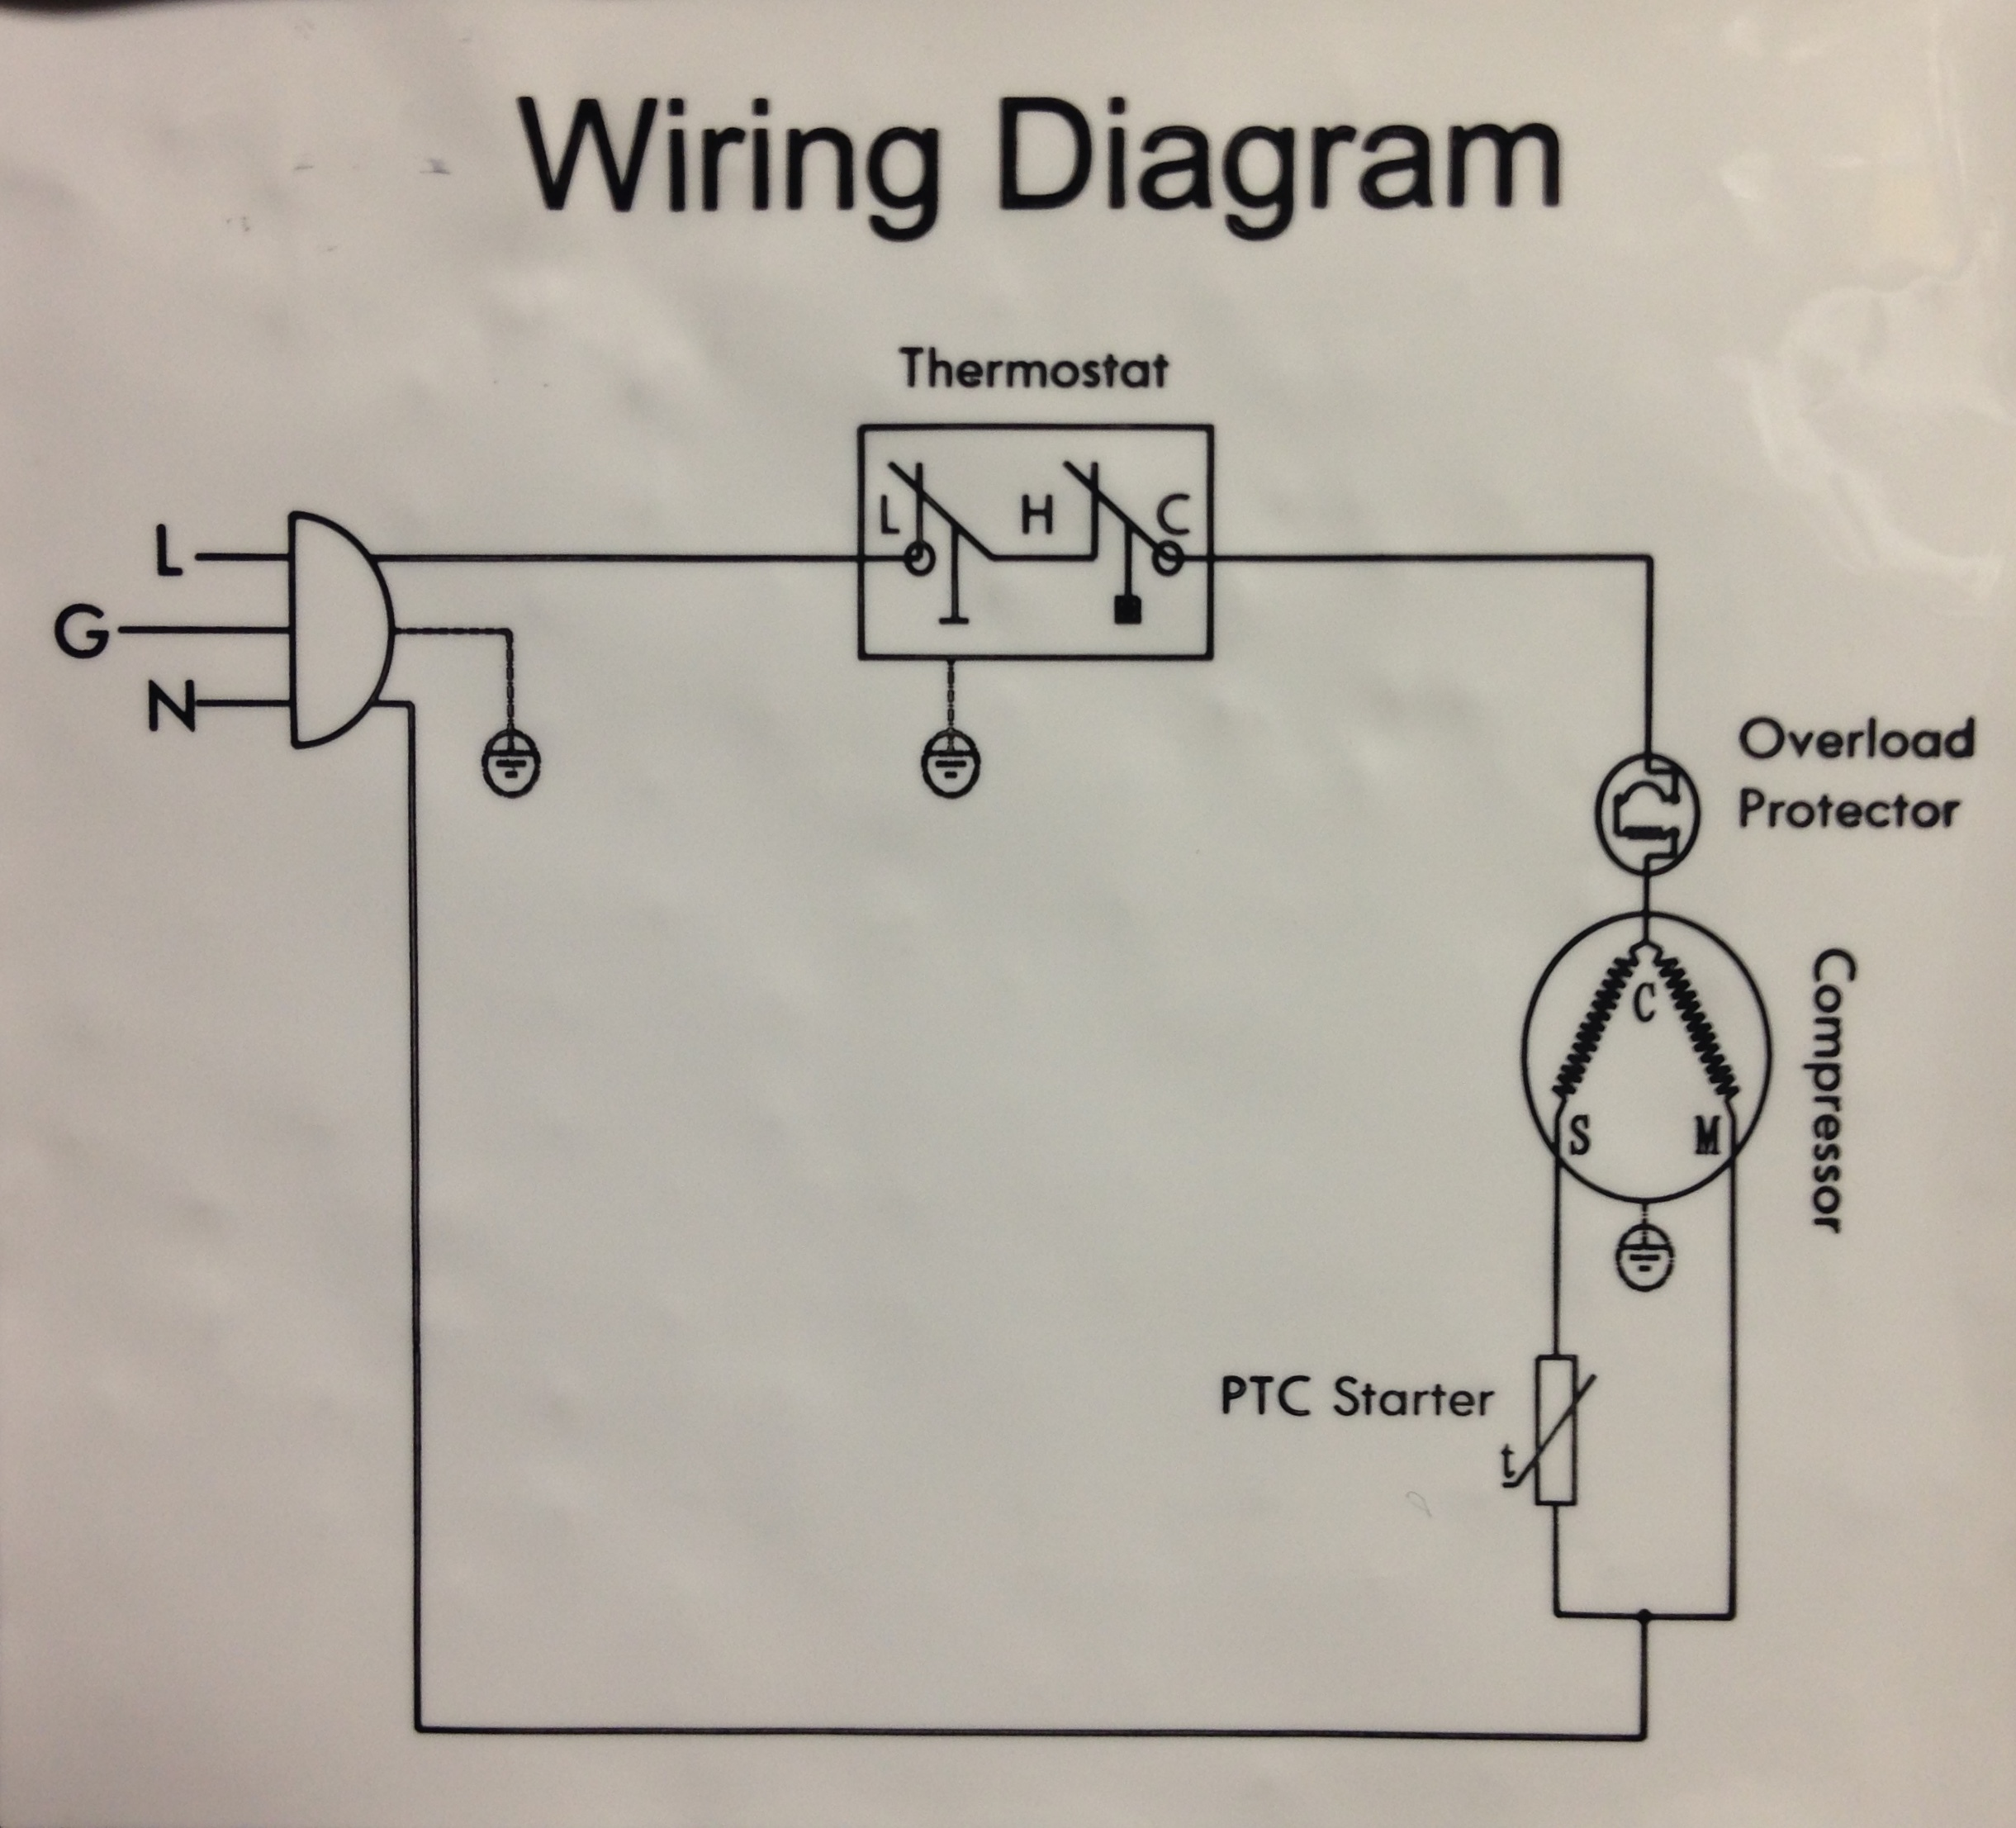 c5986337b4249150884d4e057ccb08b32fe4028e new build electronics newb diagram help fridge build brewpi 115v plug wiring diagram at soozxer.org